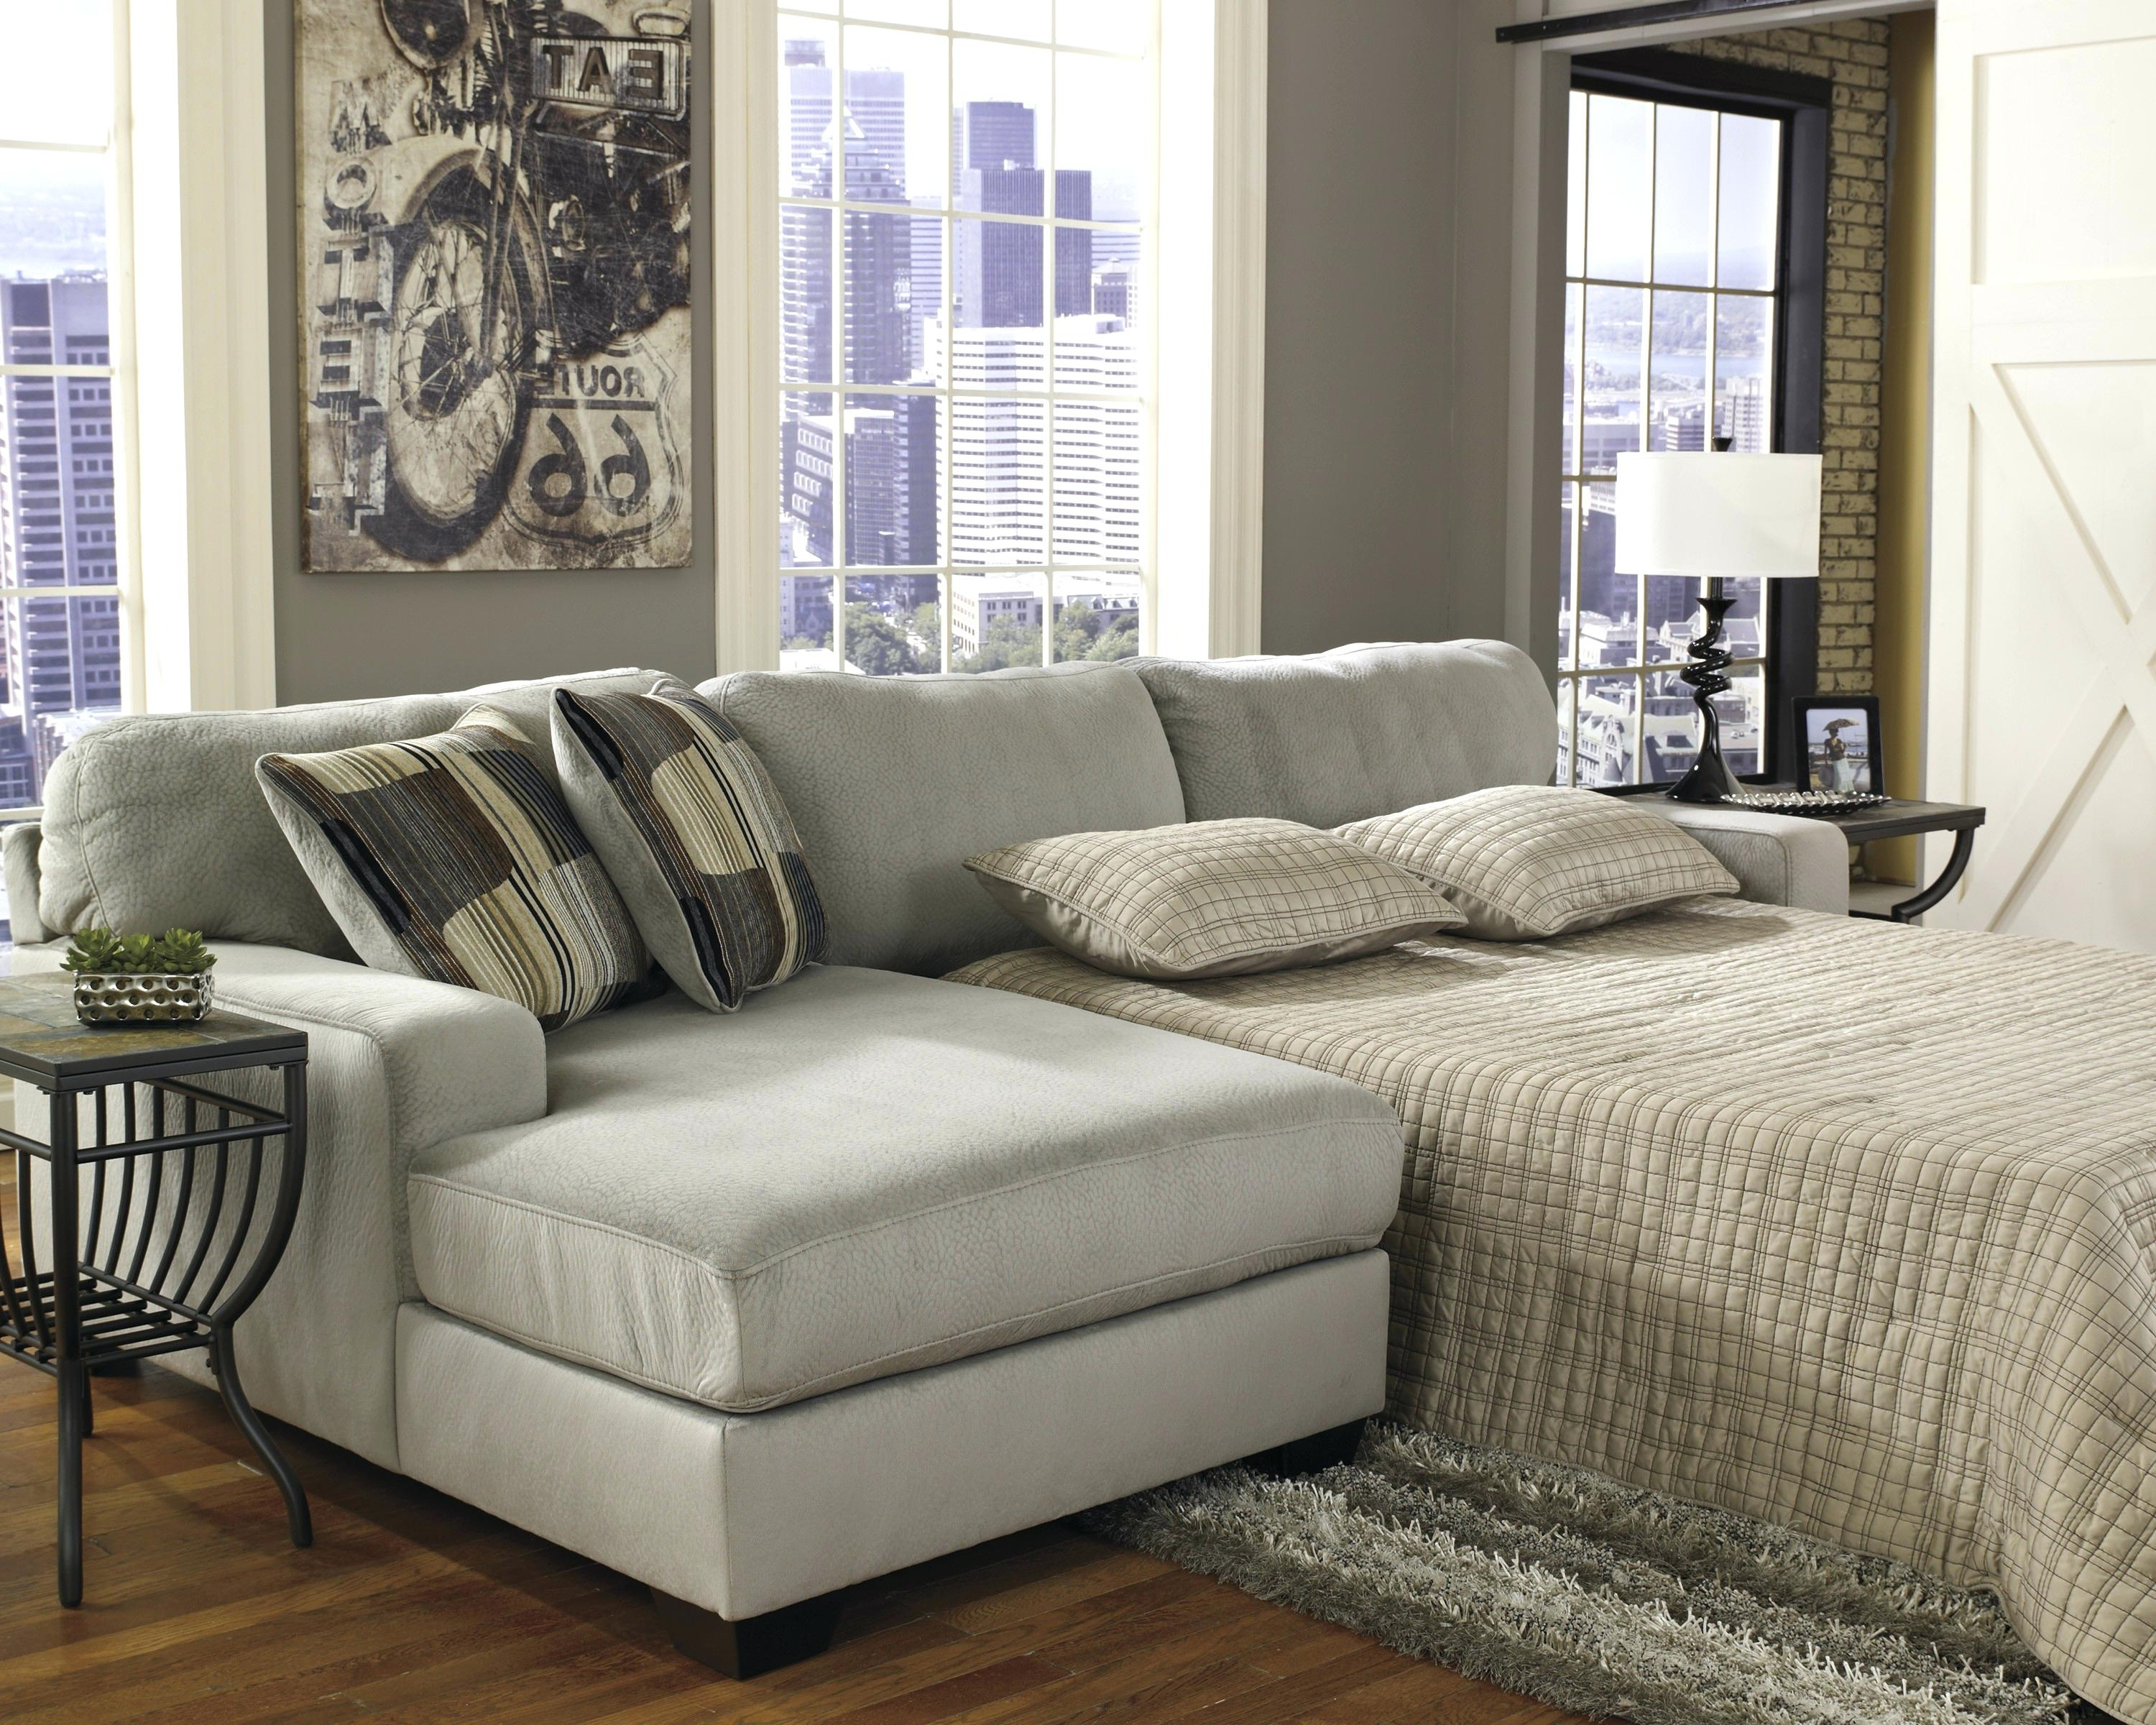 Popular Canada Sale Sectional Sofas Intended For Cheap Chaise Sofa Sectionals For Sale Sectional Sofas Canada (View 5 of 20)